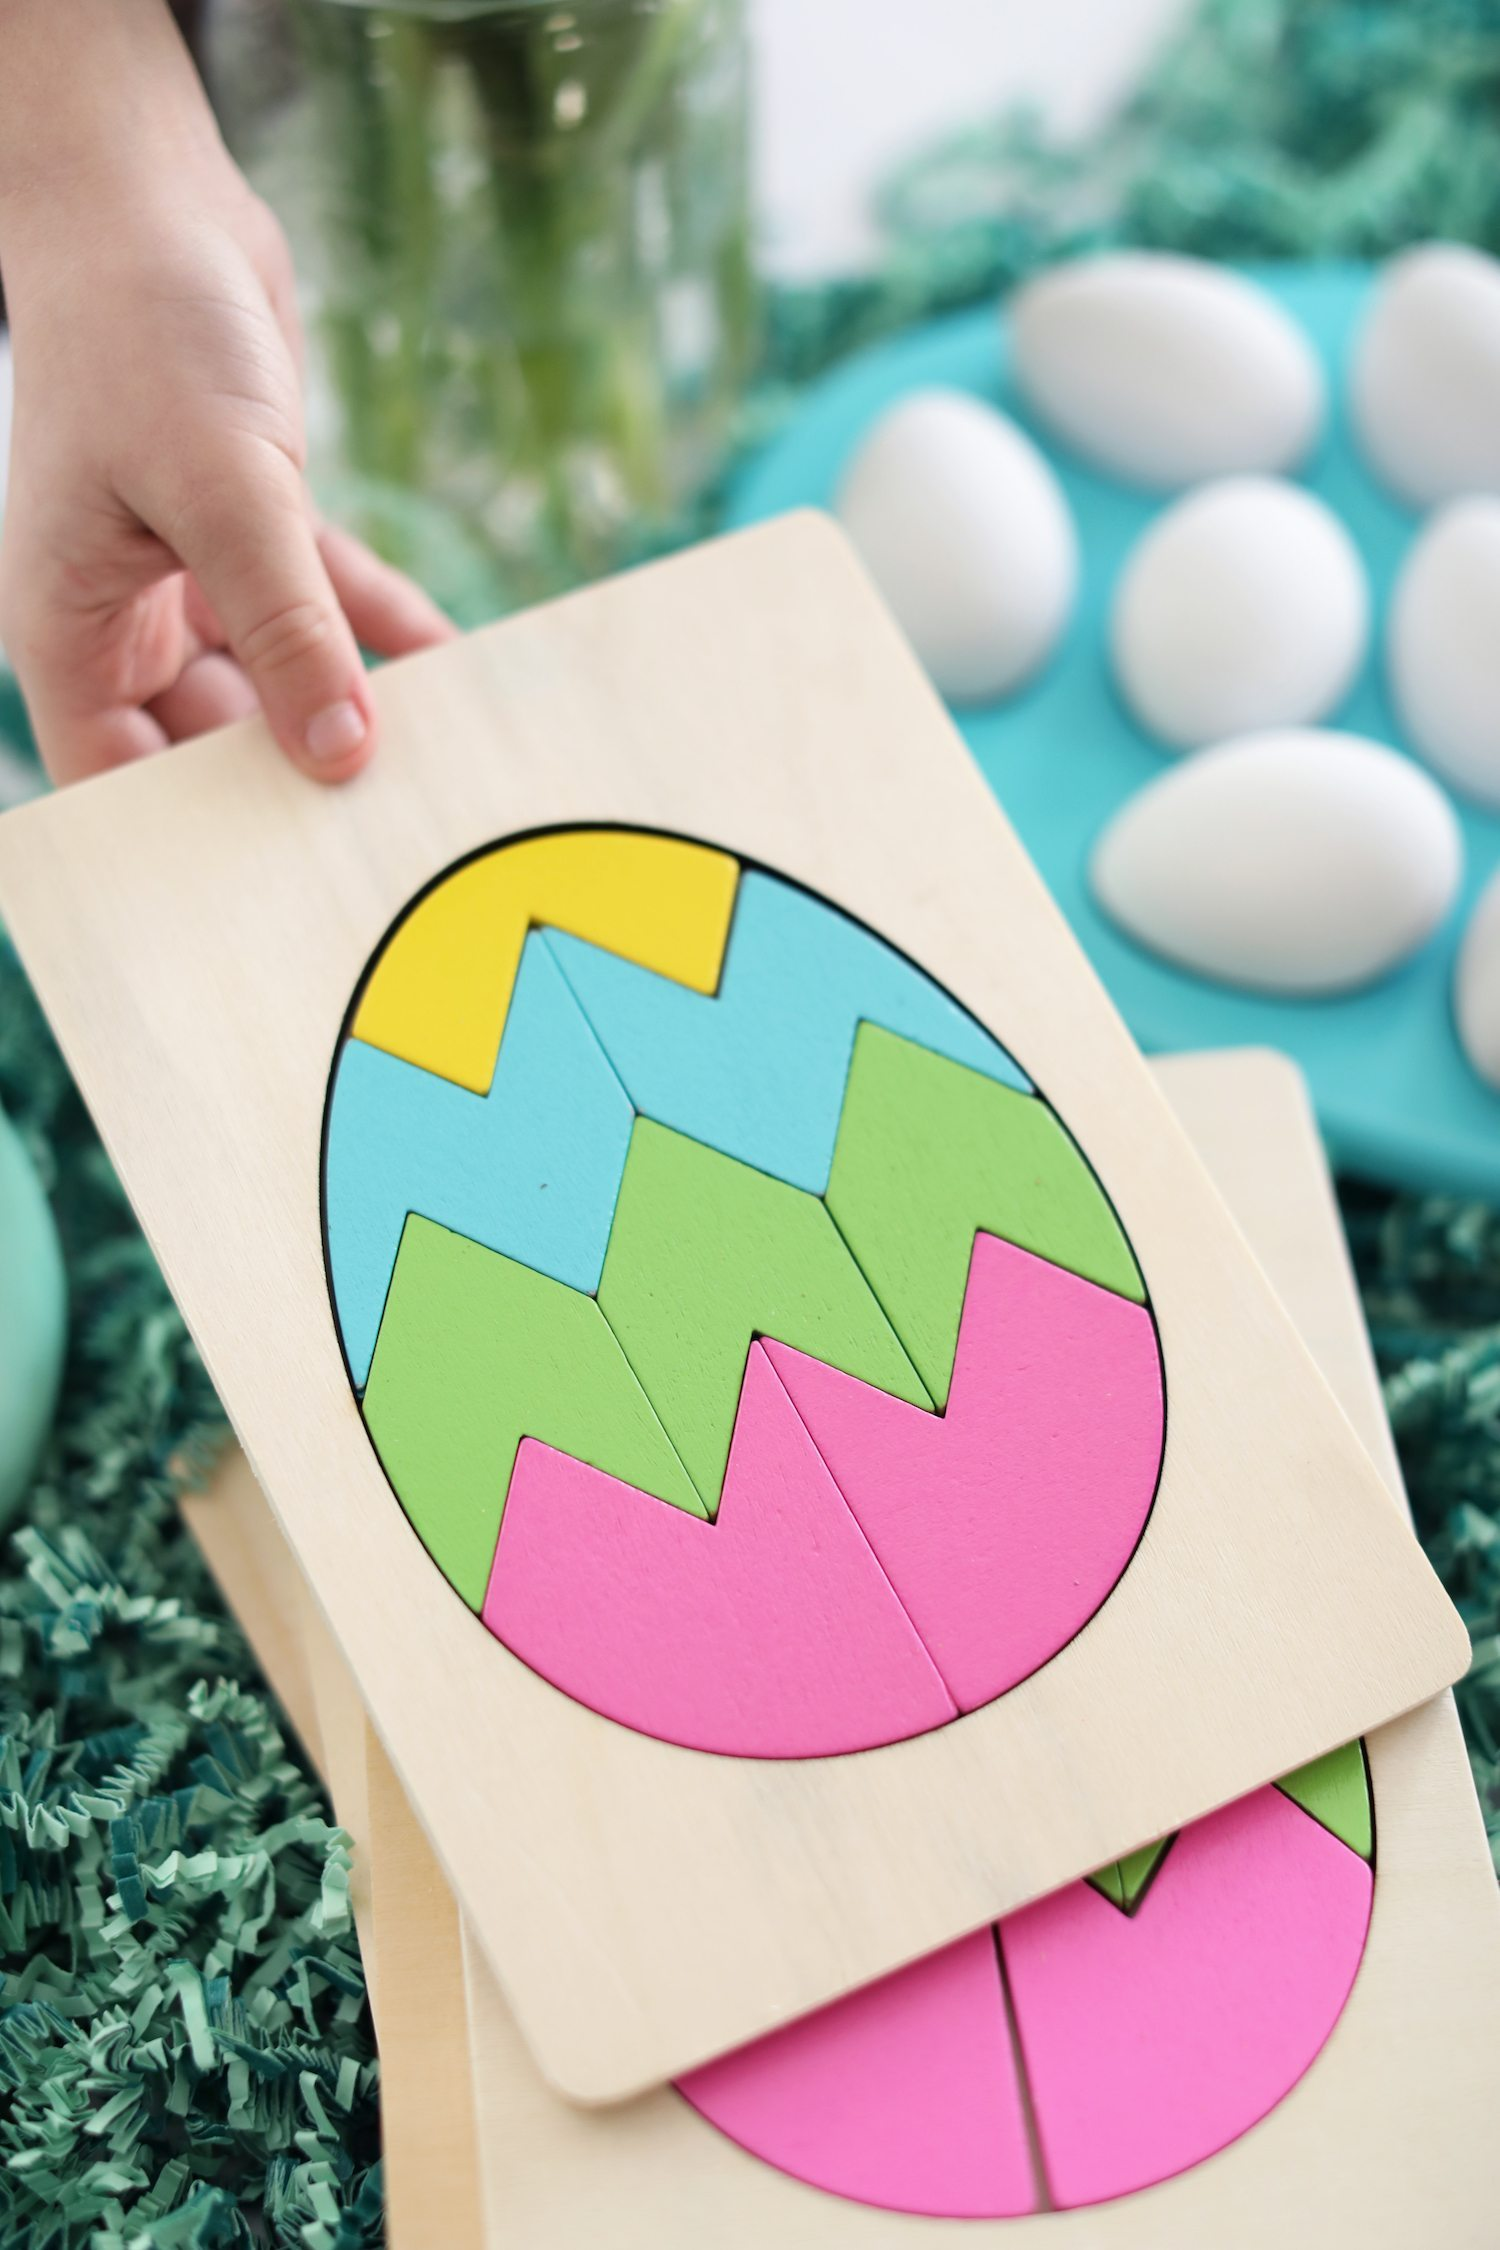 Alaska Egg Hunts for Easter: Where Can I Find Them?